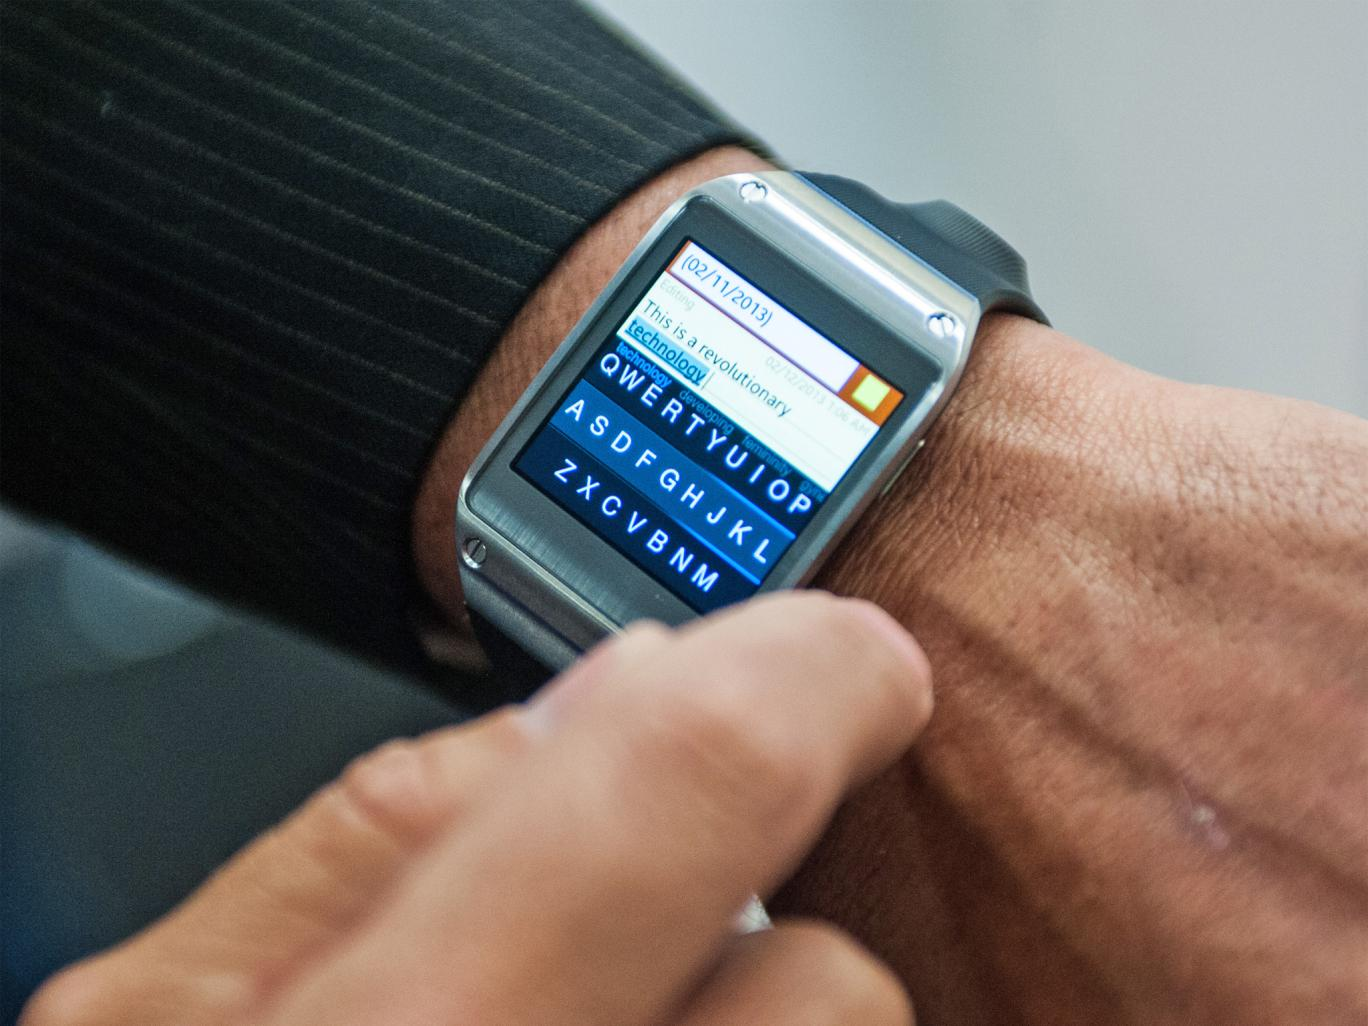 Wearable Computers Are the Next Big Devices, Report Says